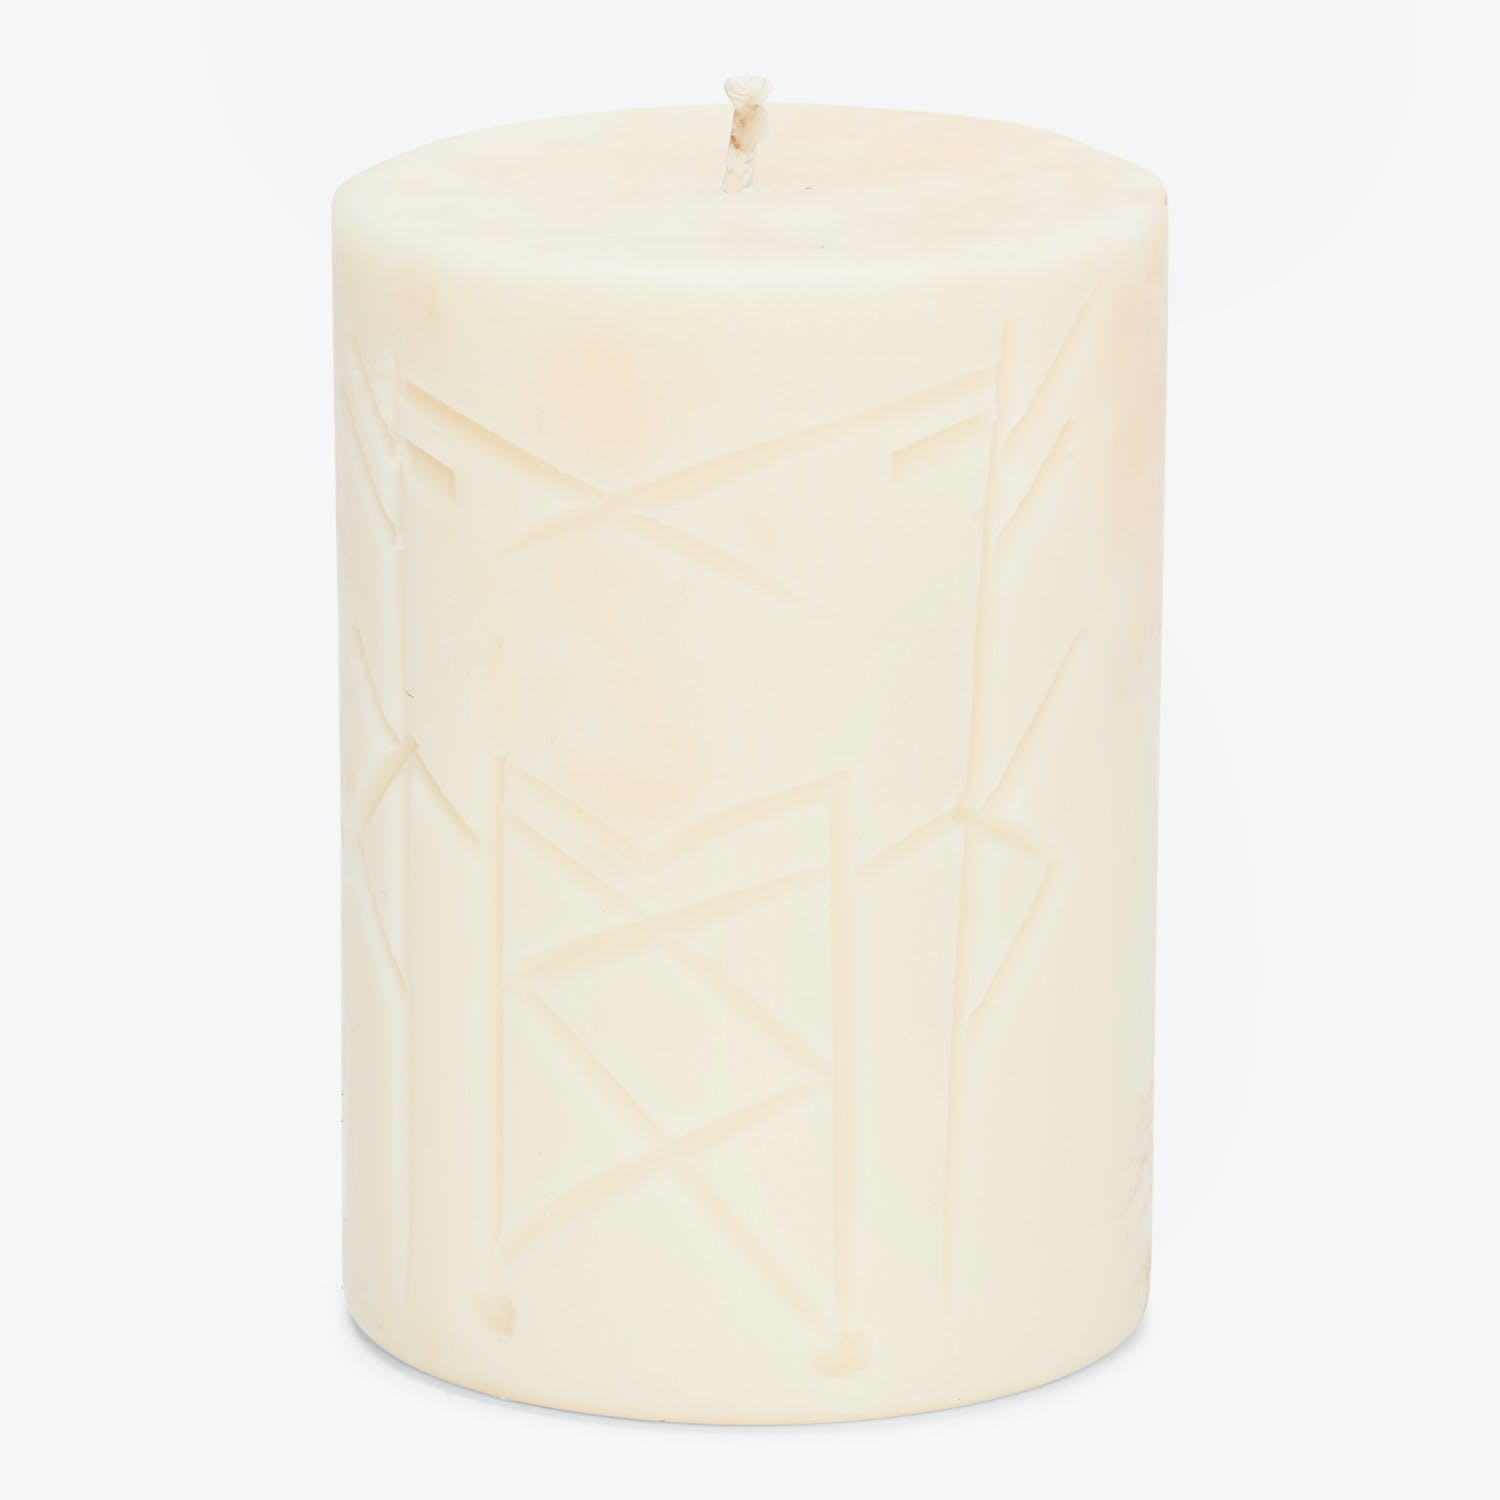 Smells Like Spells Rune Candle Norns